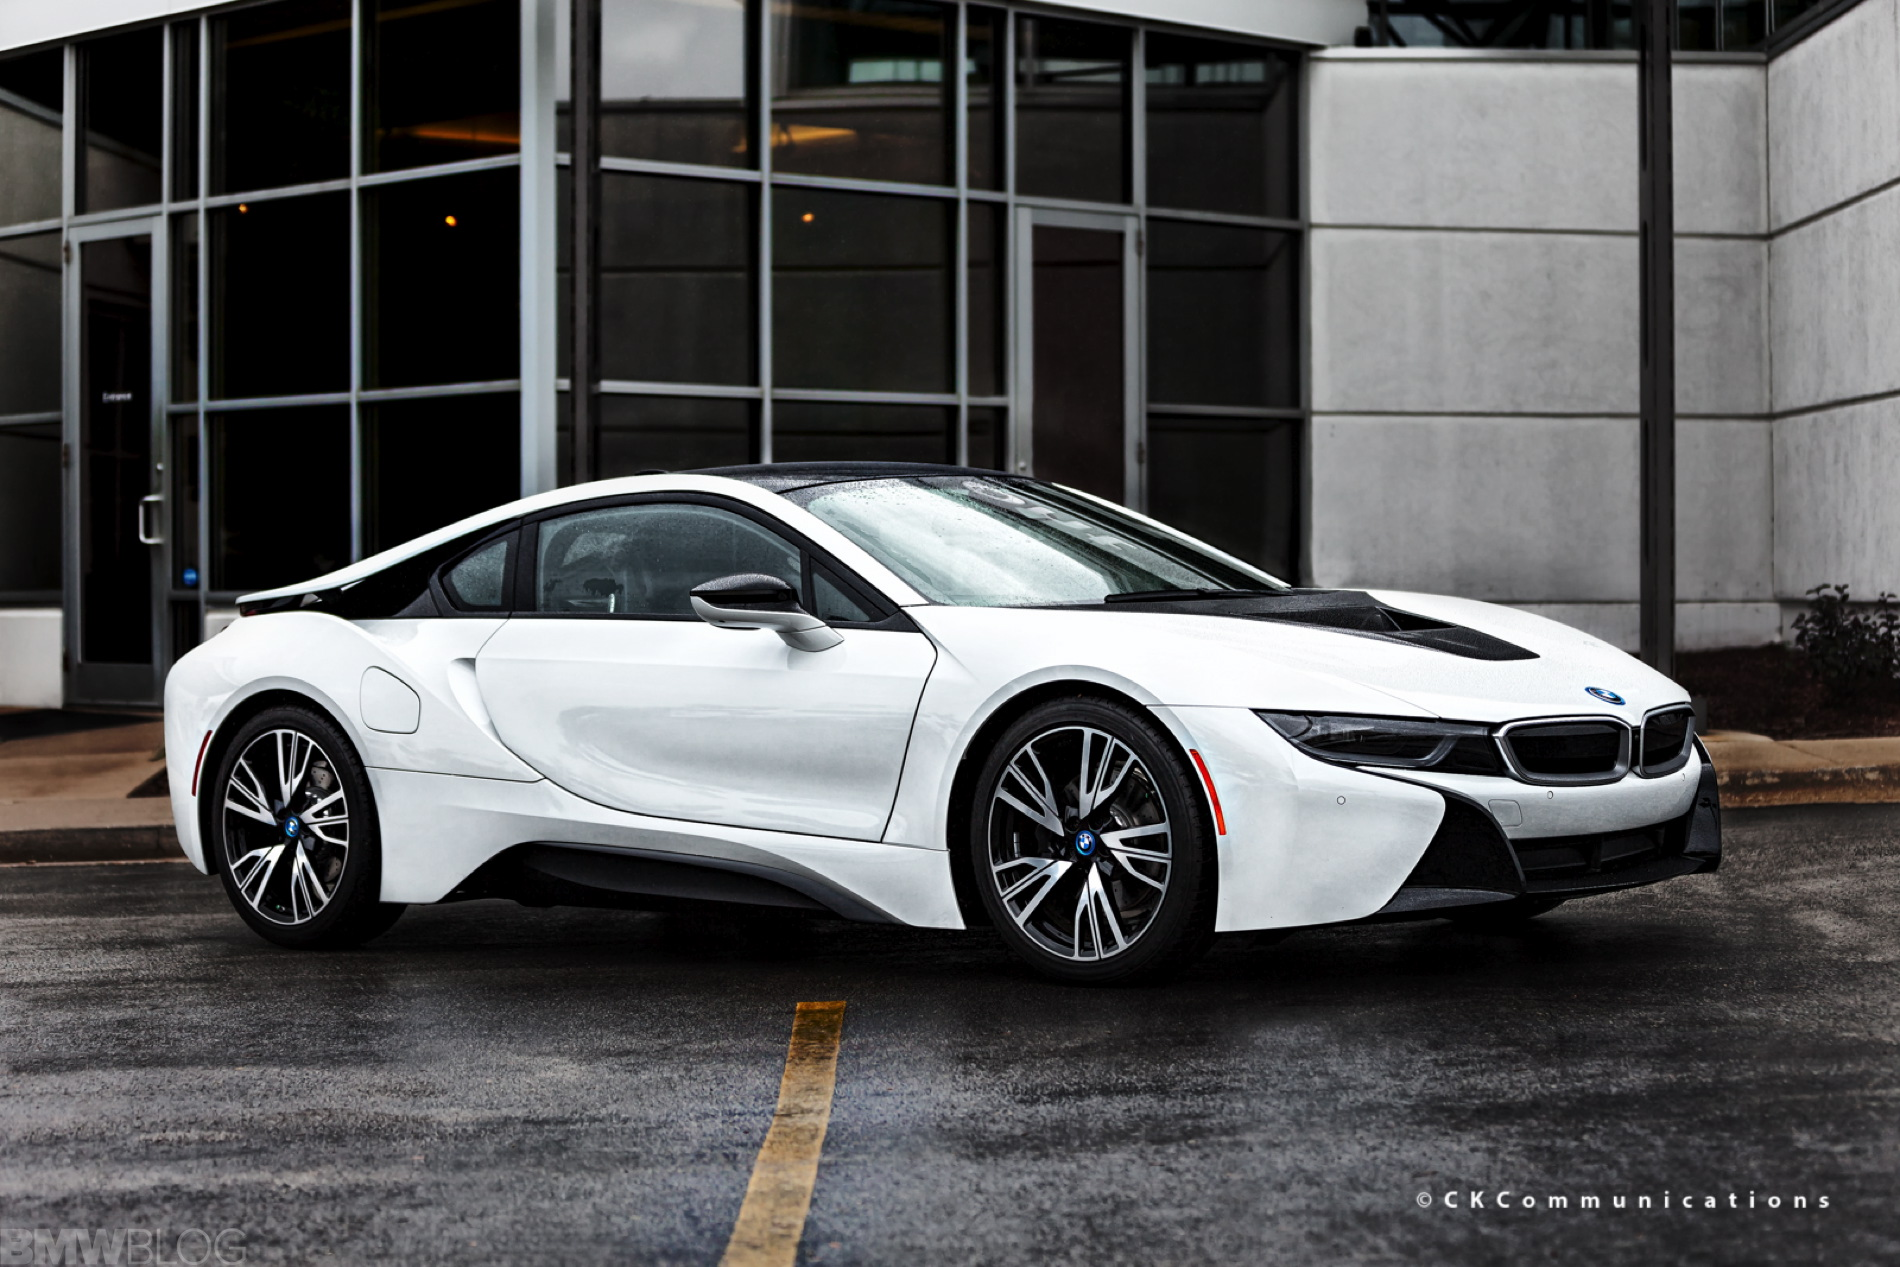 2017 bmw i8 reviews and rating motor trend - HD 1900×1267